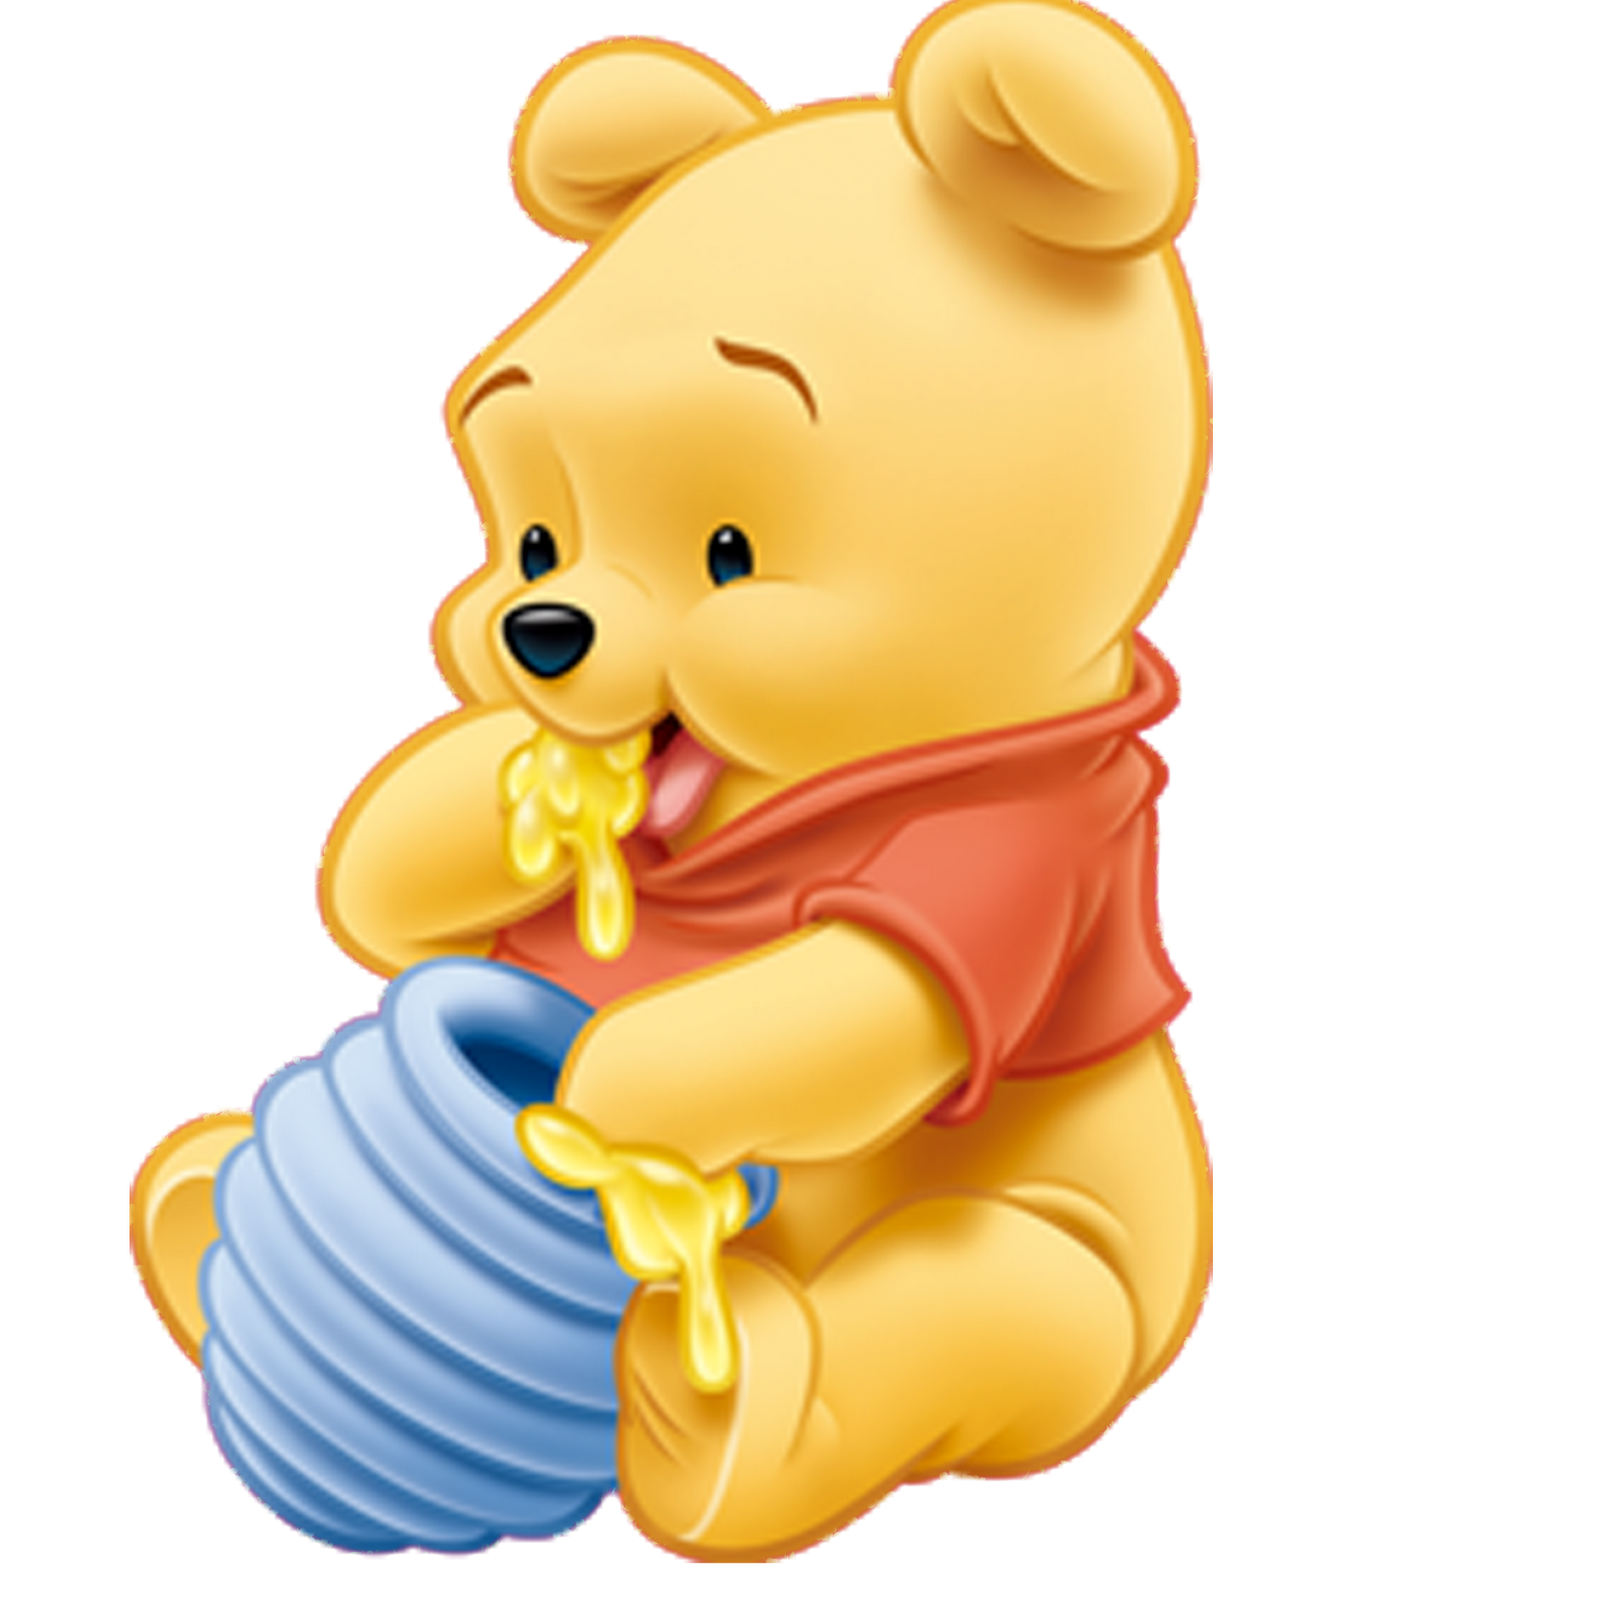 winnie pooh png image purepng free transparent cc0 png image library